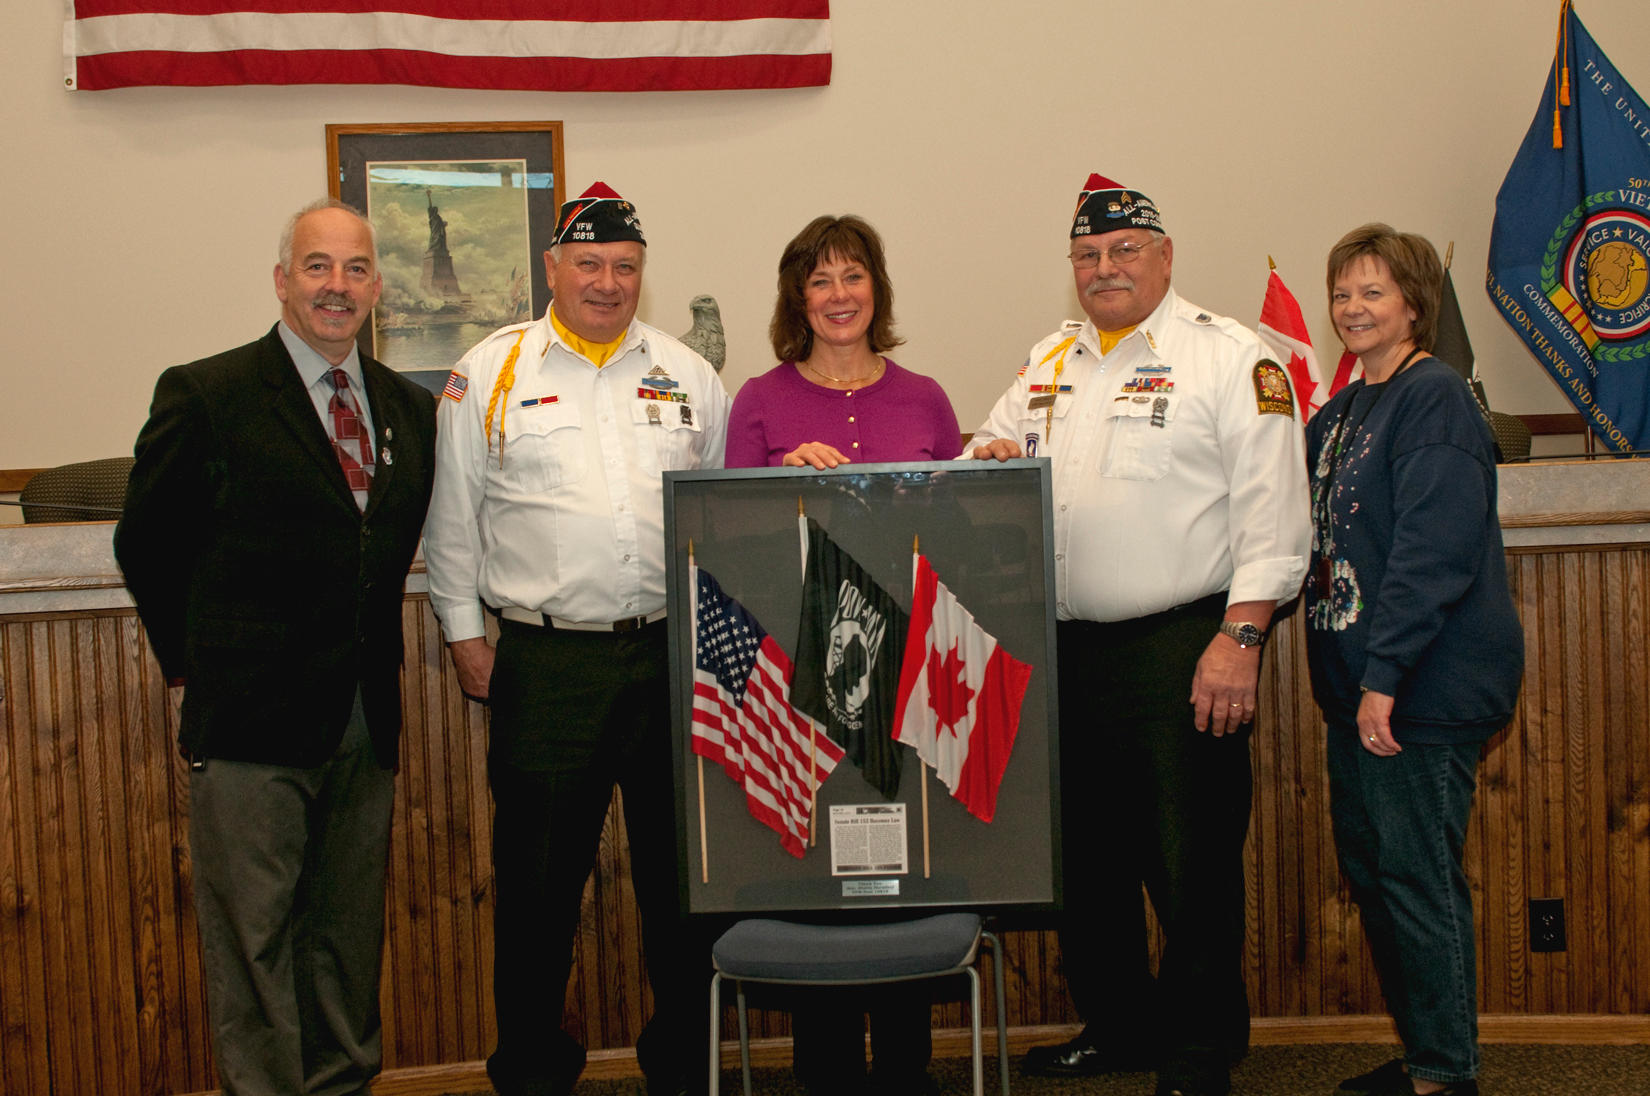 Those attending the presentation are (from the left) New Richmond Mayor Fred Horne, VFW Post 10818 member Ken House, State Sen. Sheila Harsdorf, VFW Post 10818 member Dave Green, CVSO Technician Geri Campbell. (Photo by Tom Lindfors)